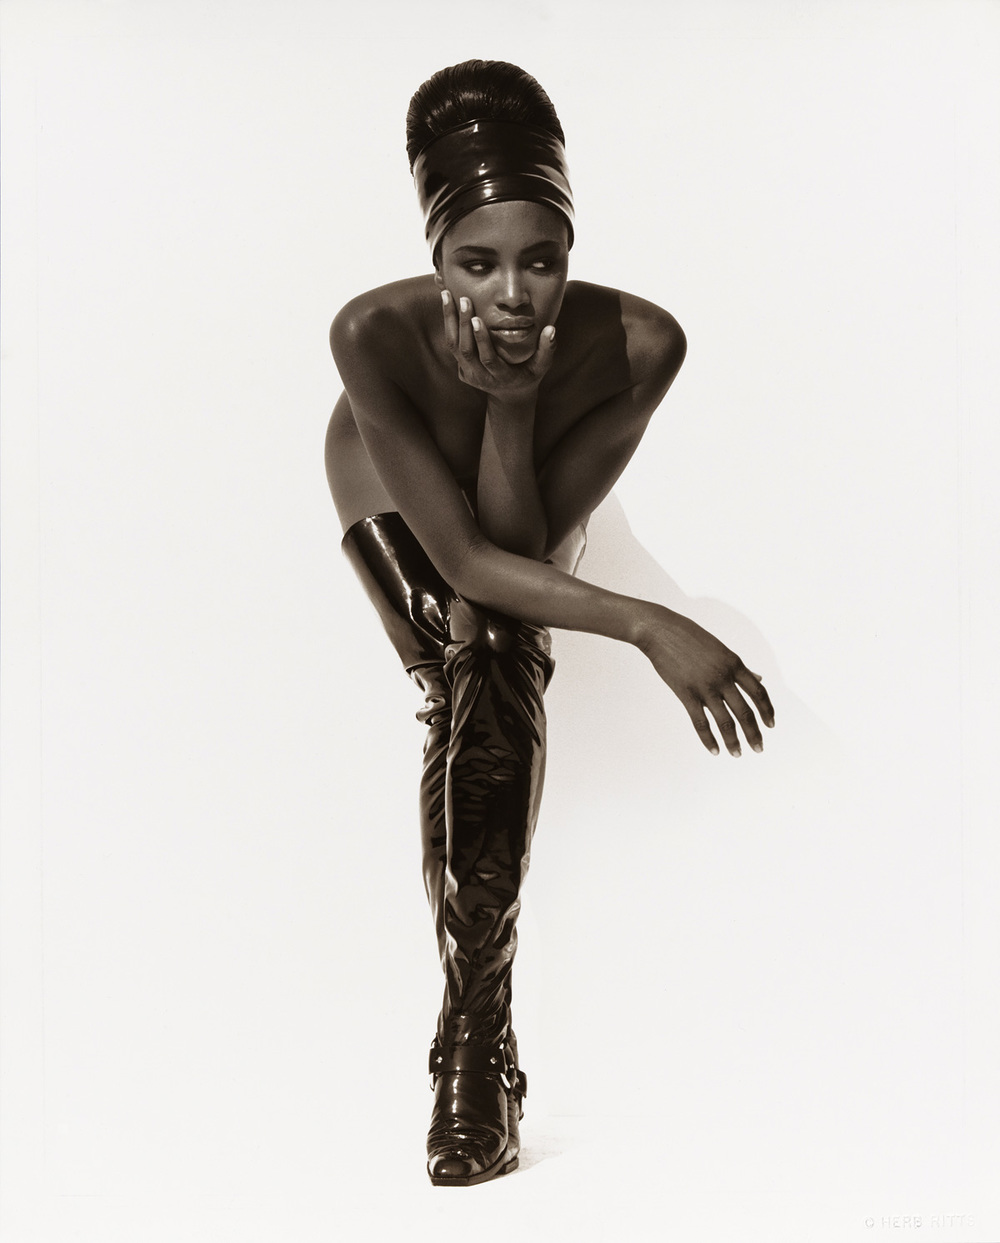 Herb Ritts (American, 1952-2002) Naomi Campbell, Face in Hand, Hollywood 1990 Gelatin silver print Museum of Fine Arts, Boston Gift of Herb Ritts Foundation in honor of Malcolm Rogers © Herb Ritts Foundation Photograph © Museum of Fine Arts, Boston